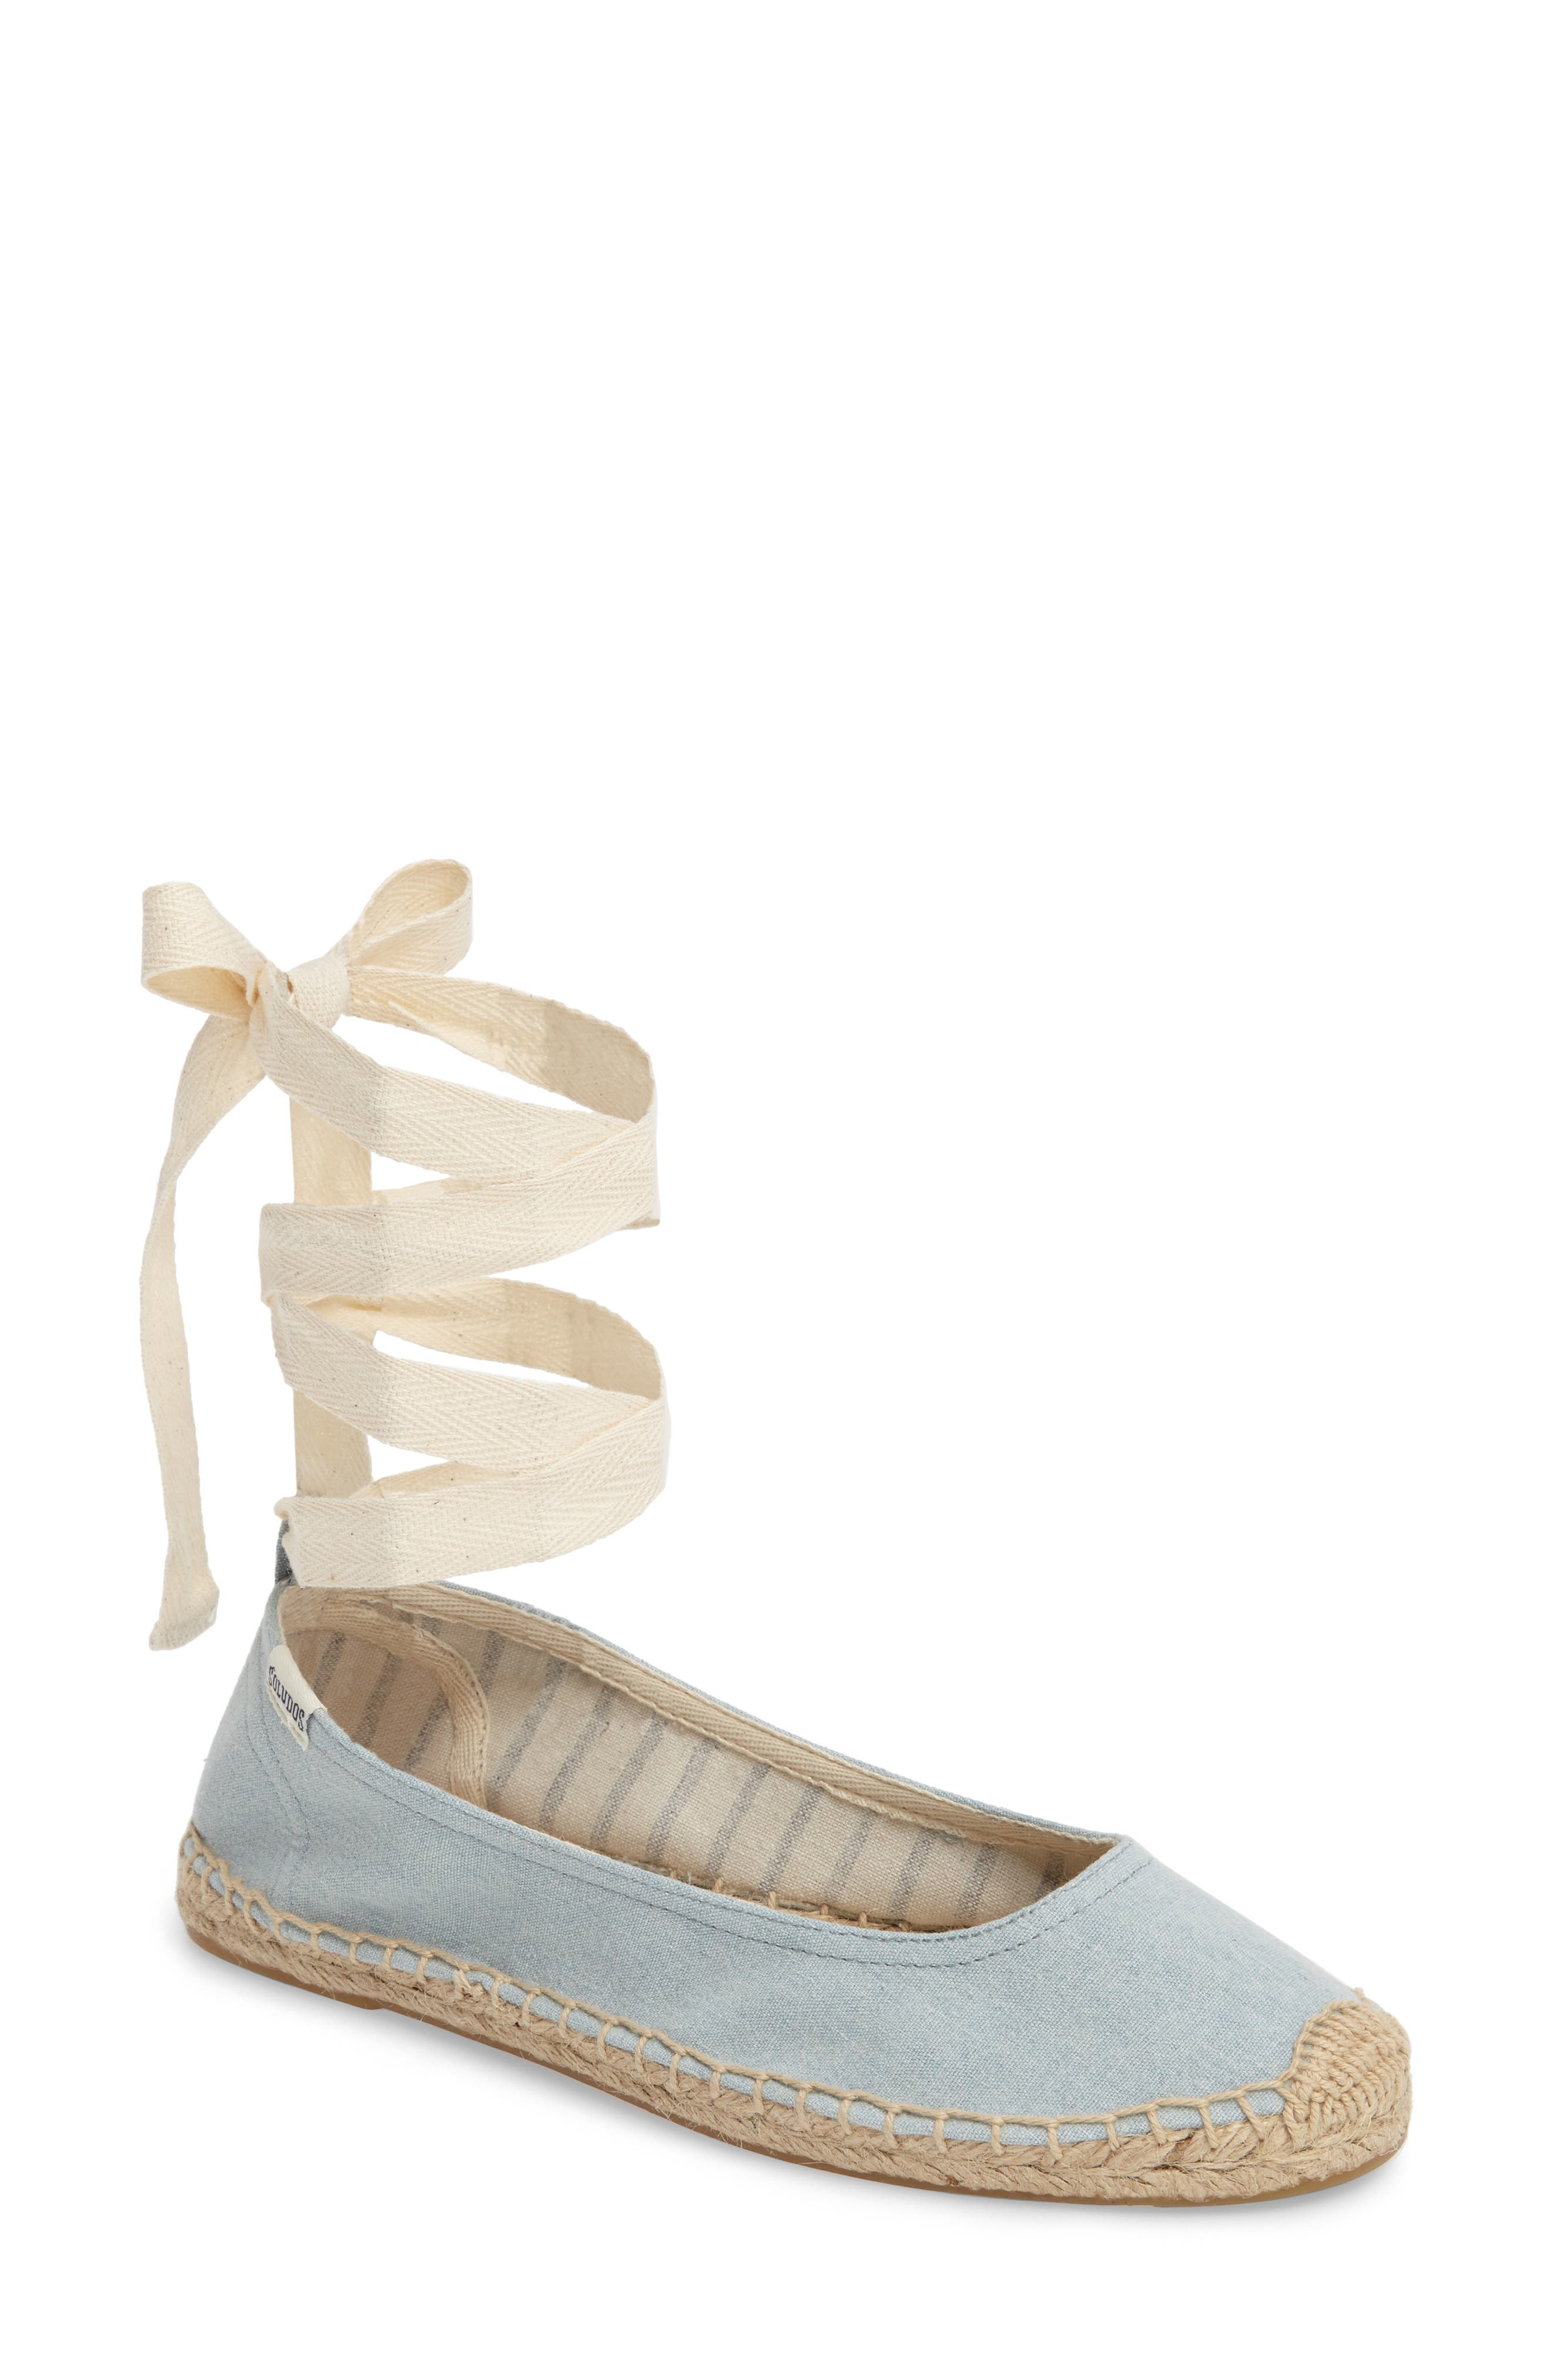 Main Image - Soludos Ankle Tie Espadrille Flat (Women)